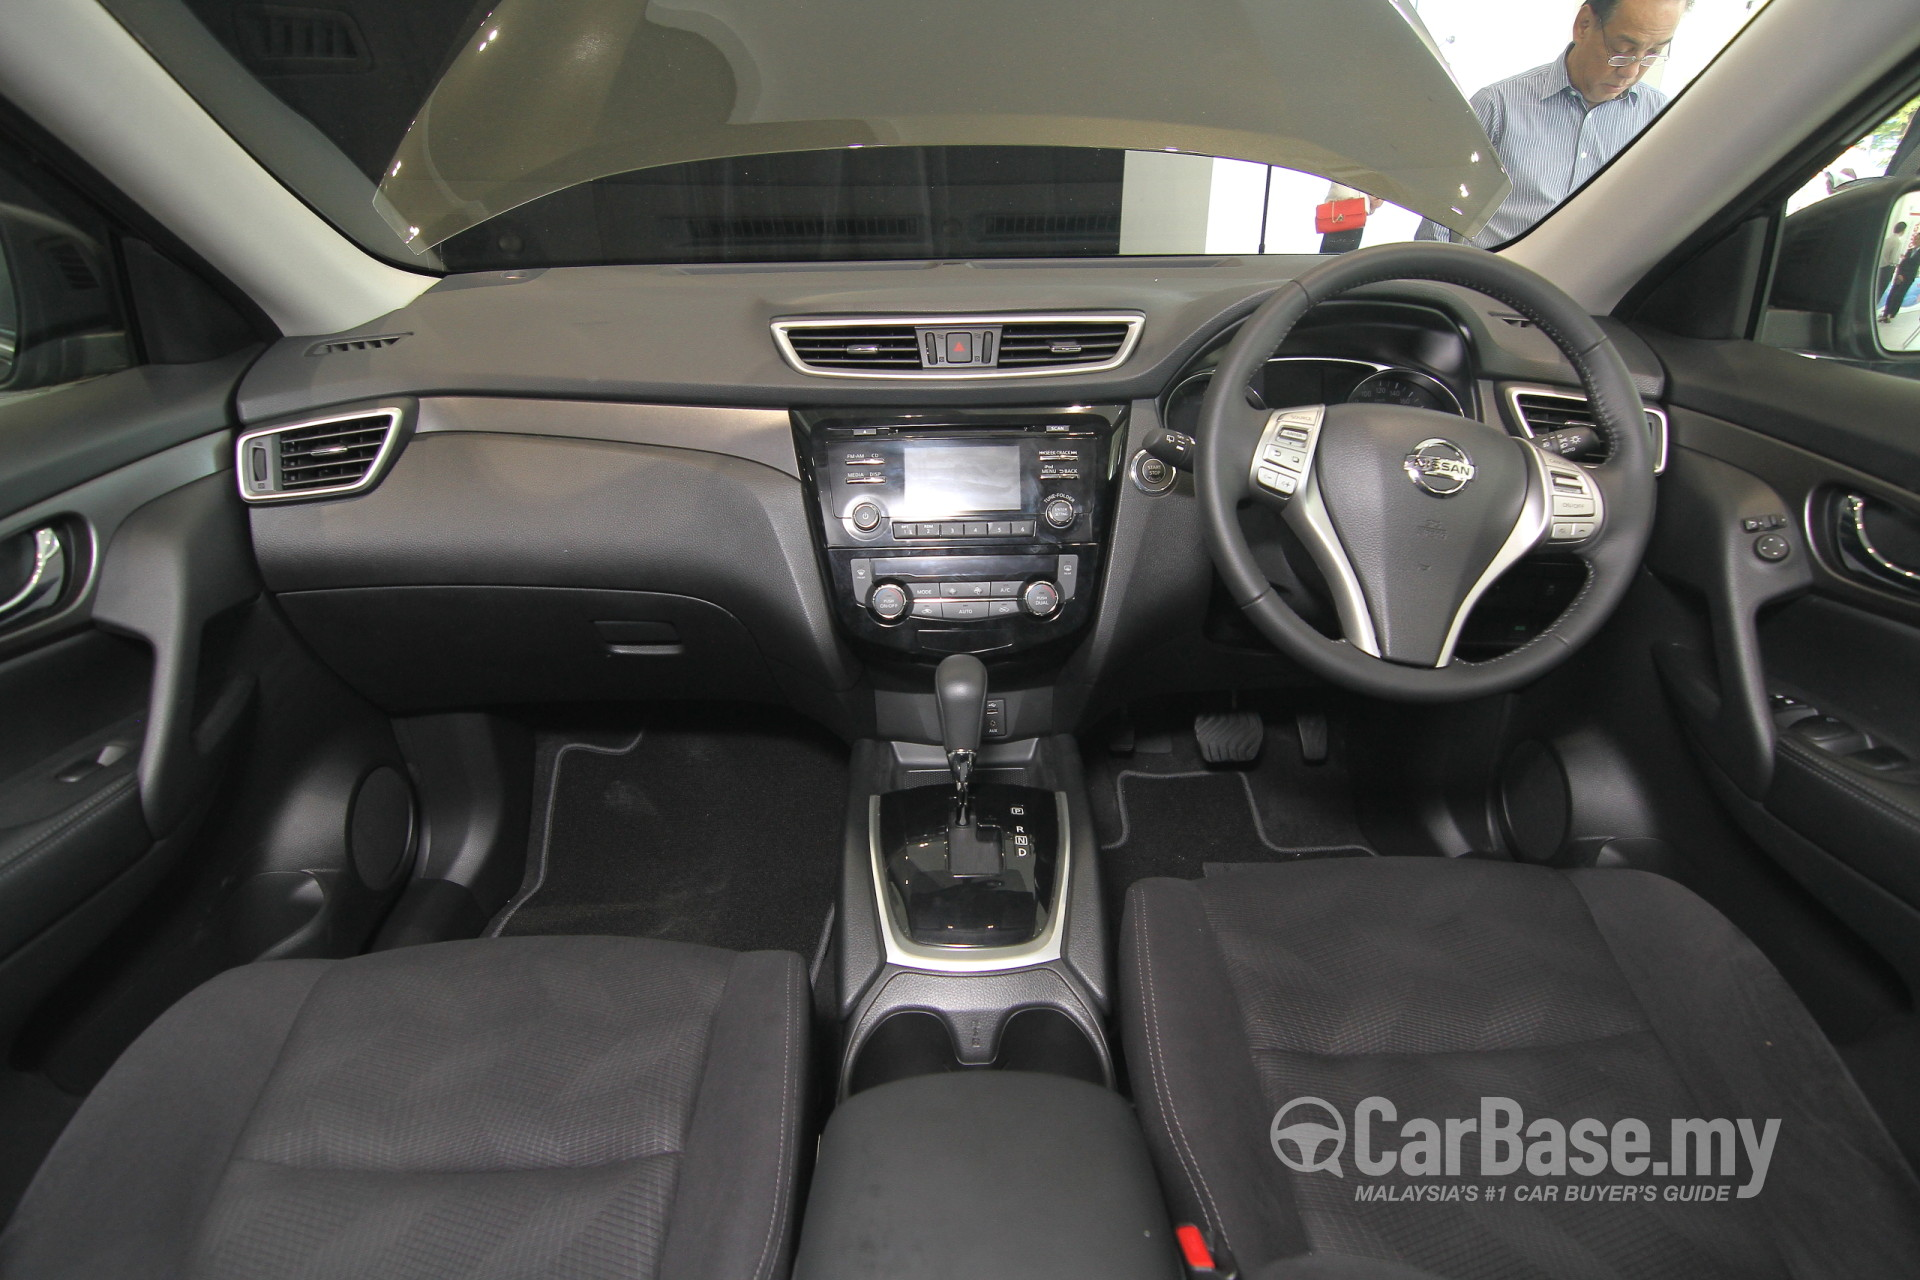 Nissan X-Trail 3rd Gen (2015) Interior Image #18936 in Malaysia - Reviews, Specs, Prices